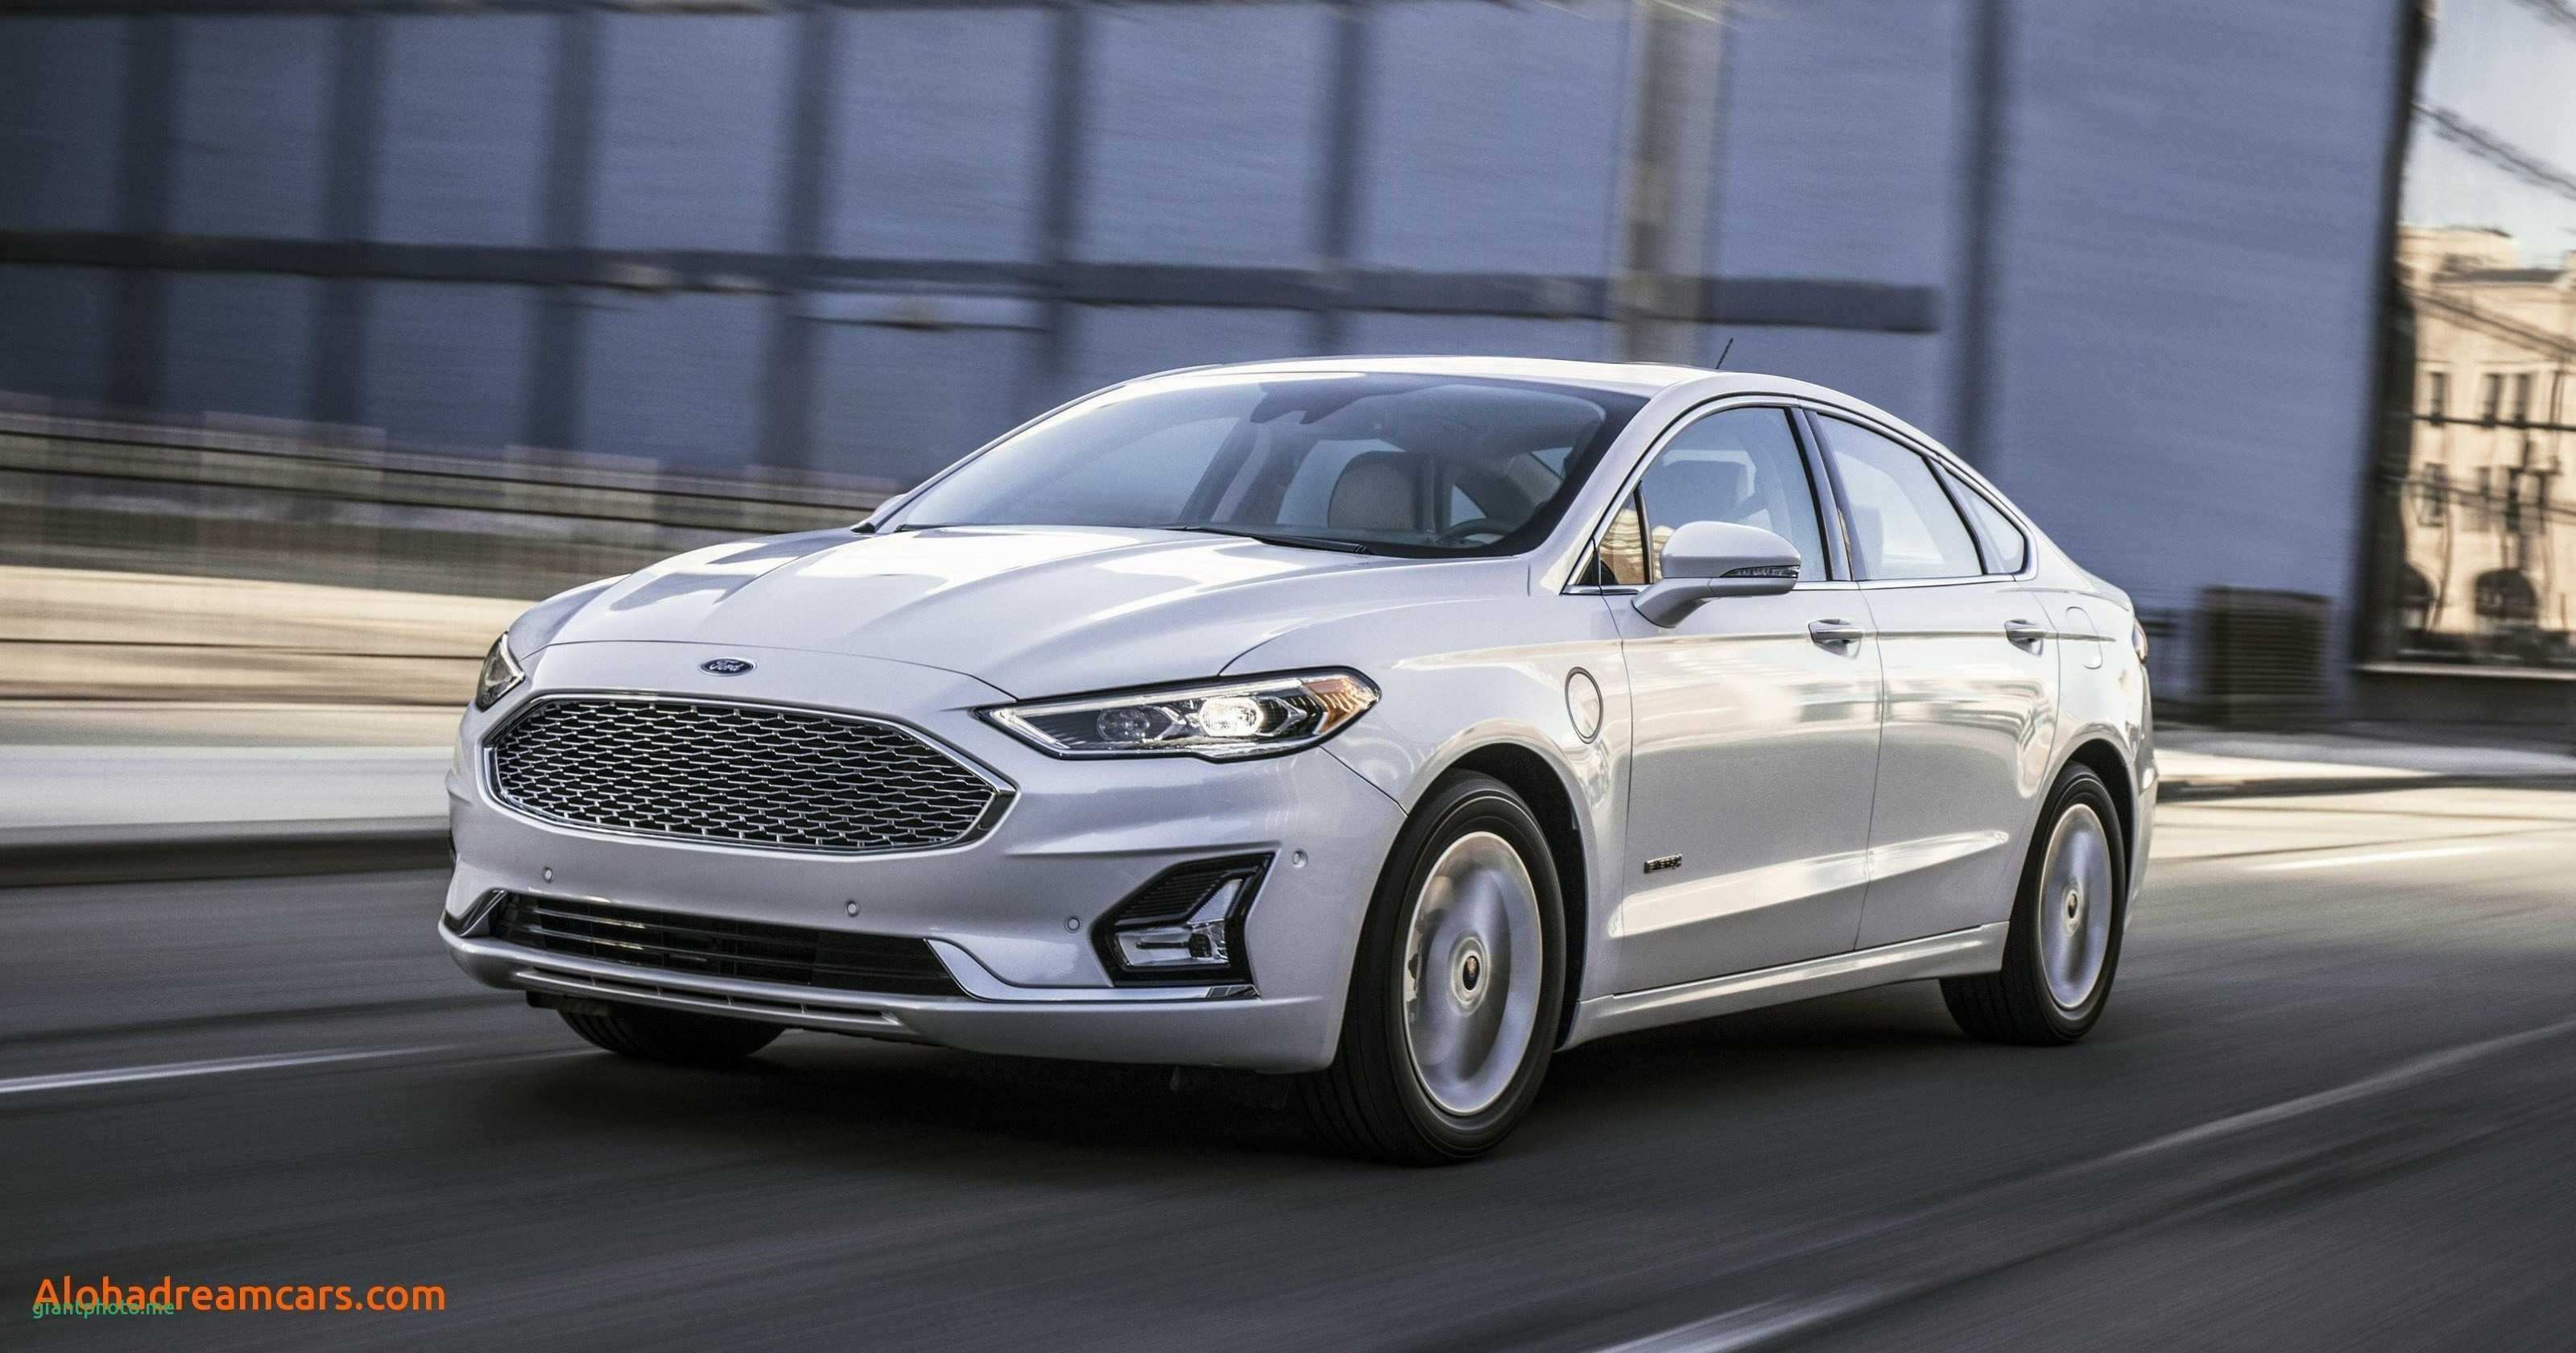 63 New Spy Shots Ford Fusion Rumors